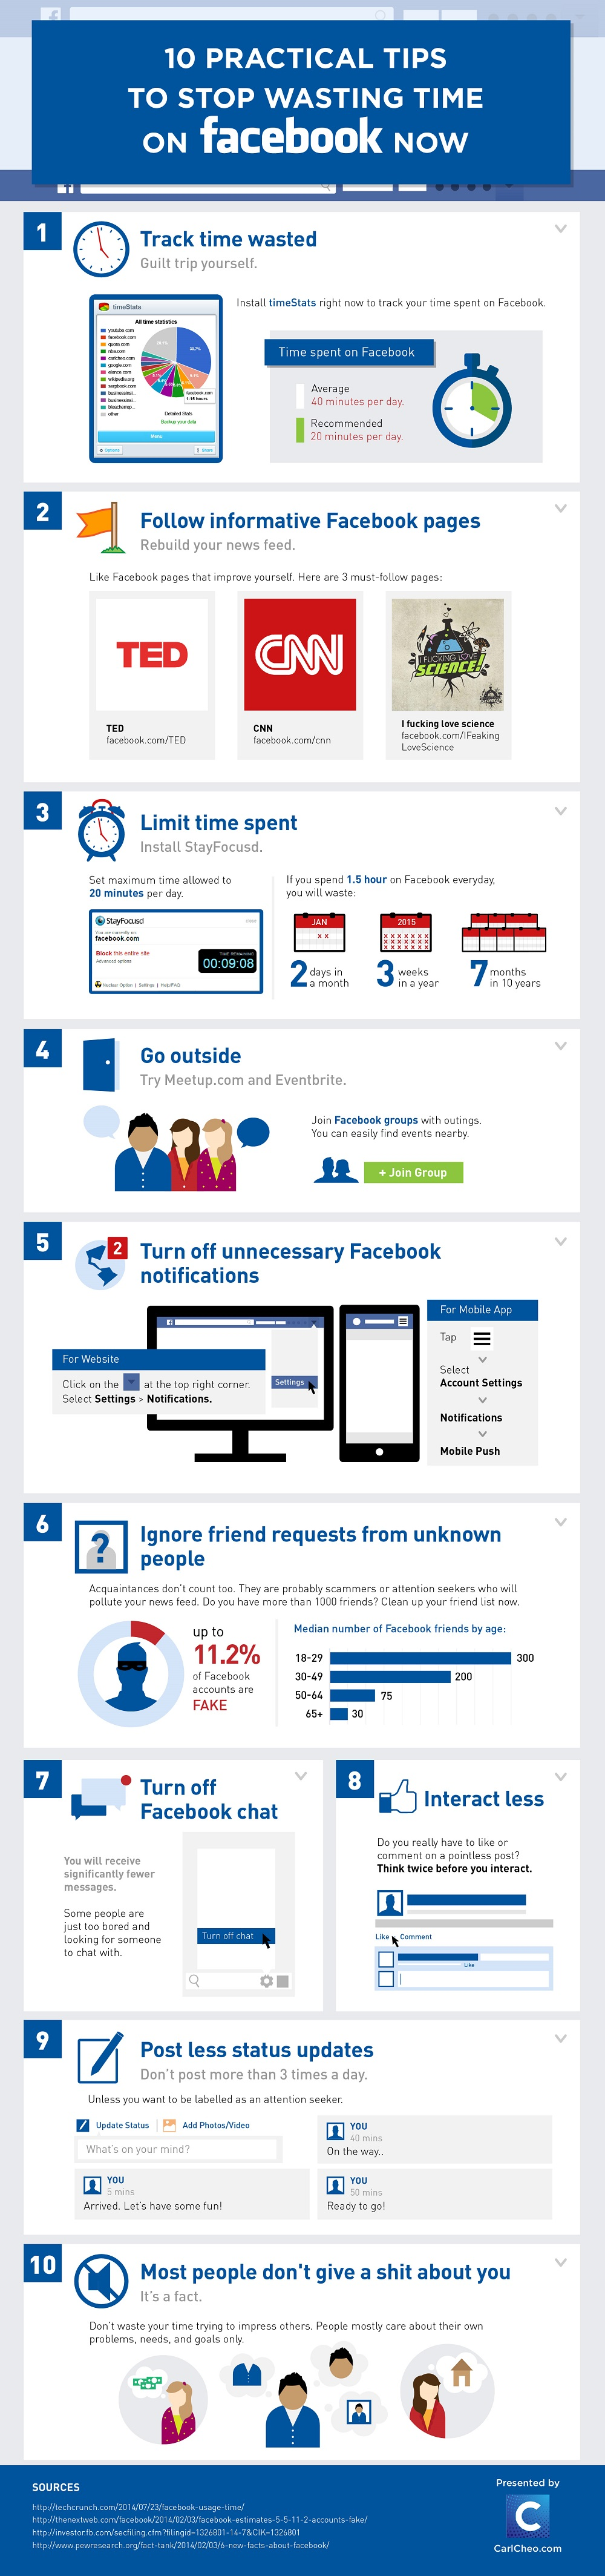 10 Tips To Stop Wasting Time on Facebook